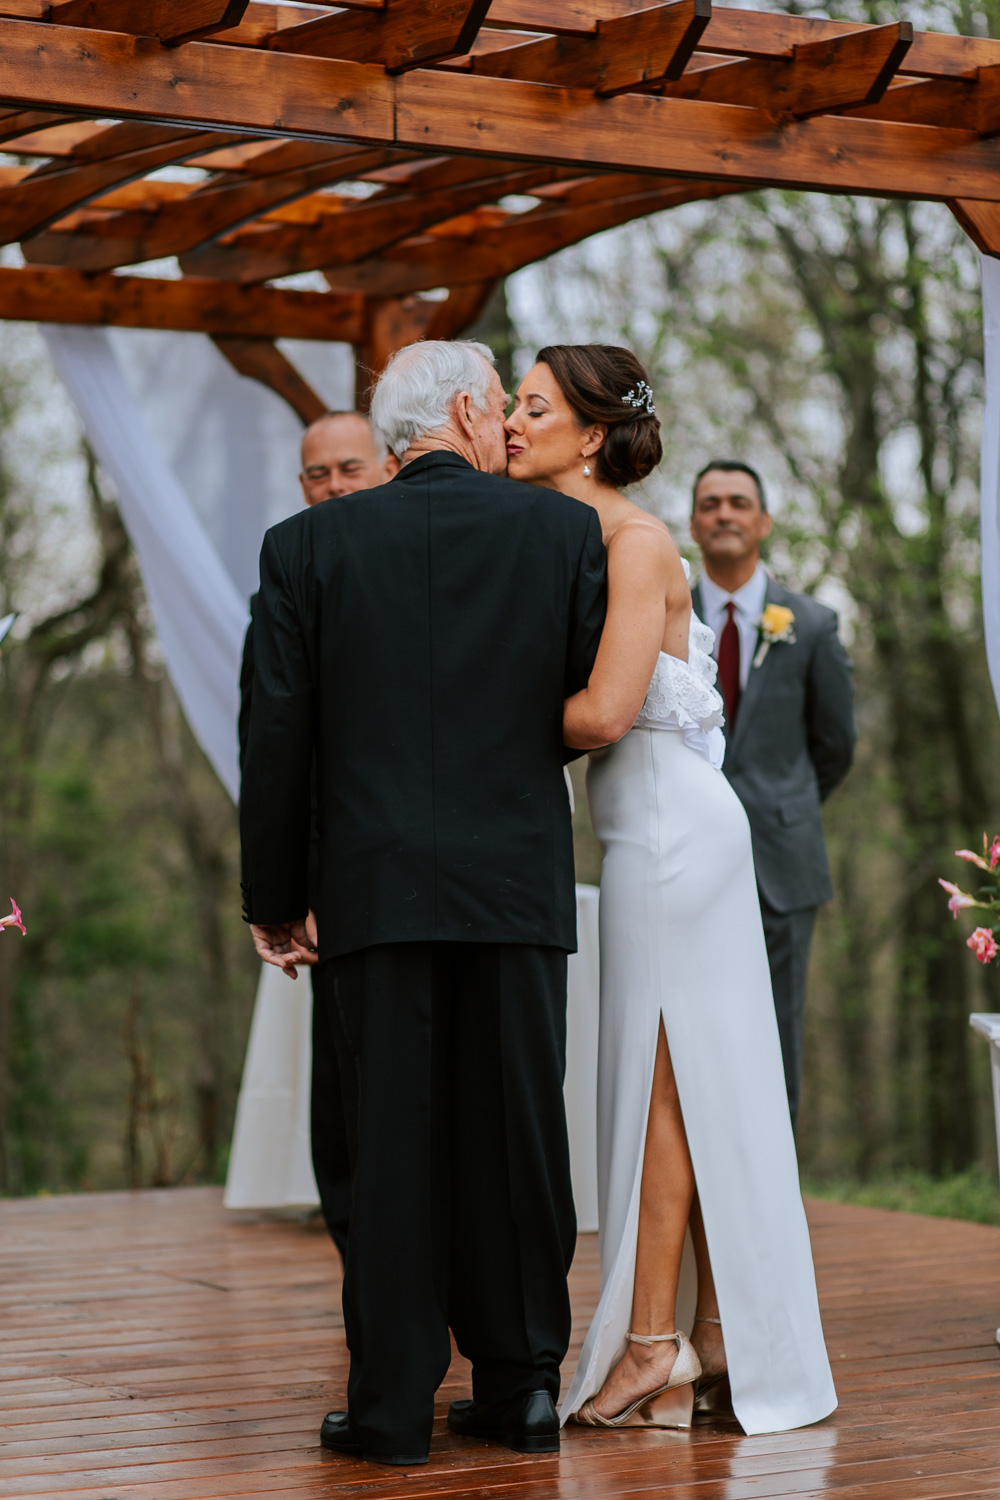 Shutter Up Studios   Wedding photographer in Pittsburgh, Pennsylvania   Outdoor rustic elegant country chic ceremony with father giving bride to groom